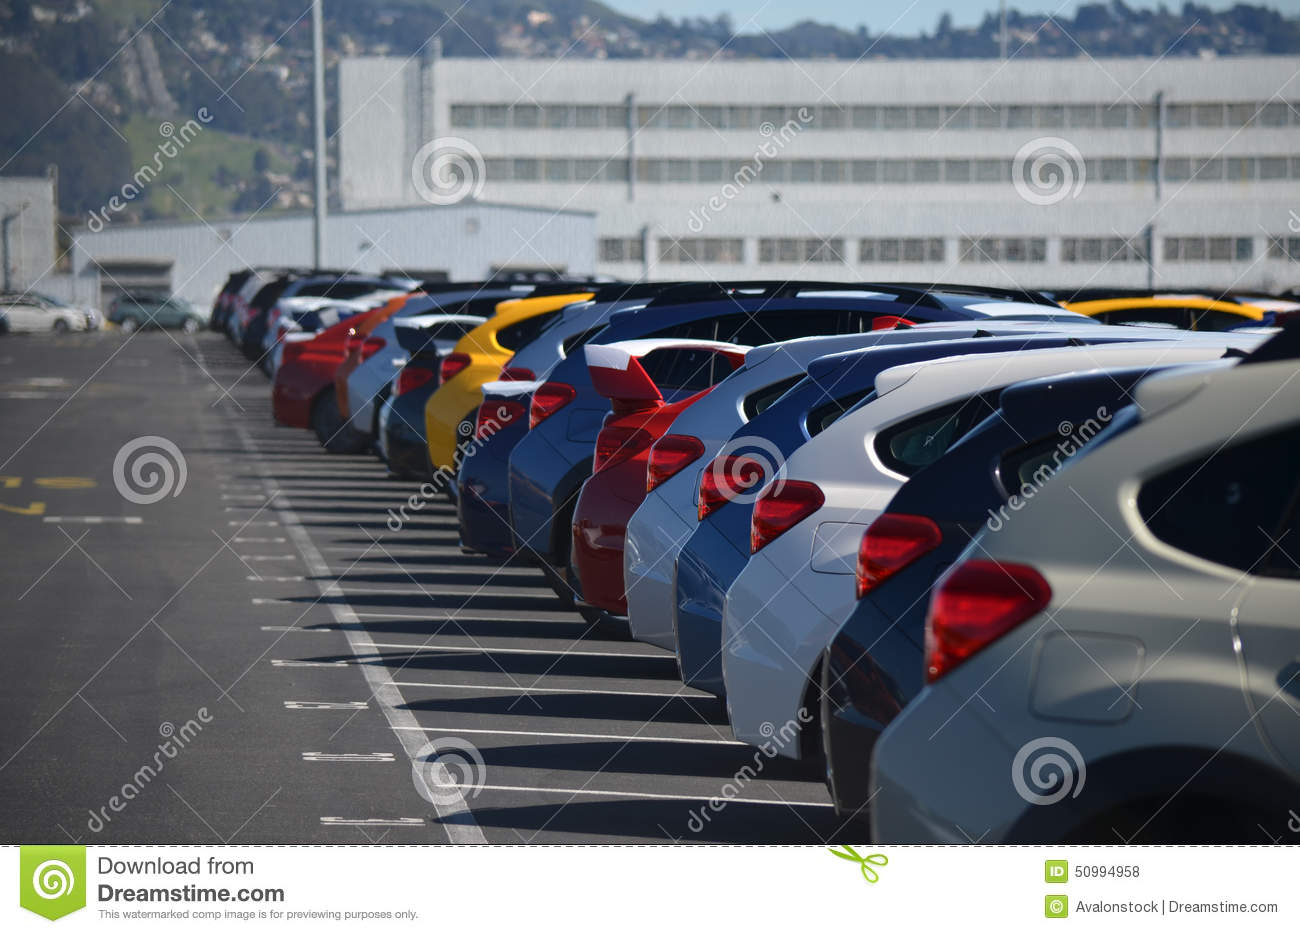 New Cars Lined Up in a Parking Lot